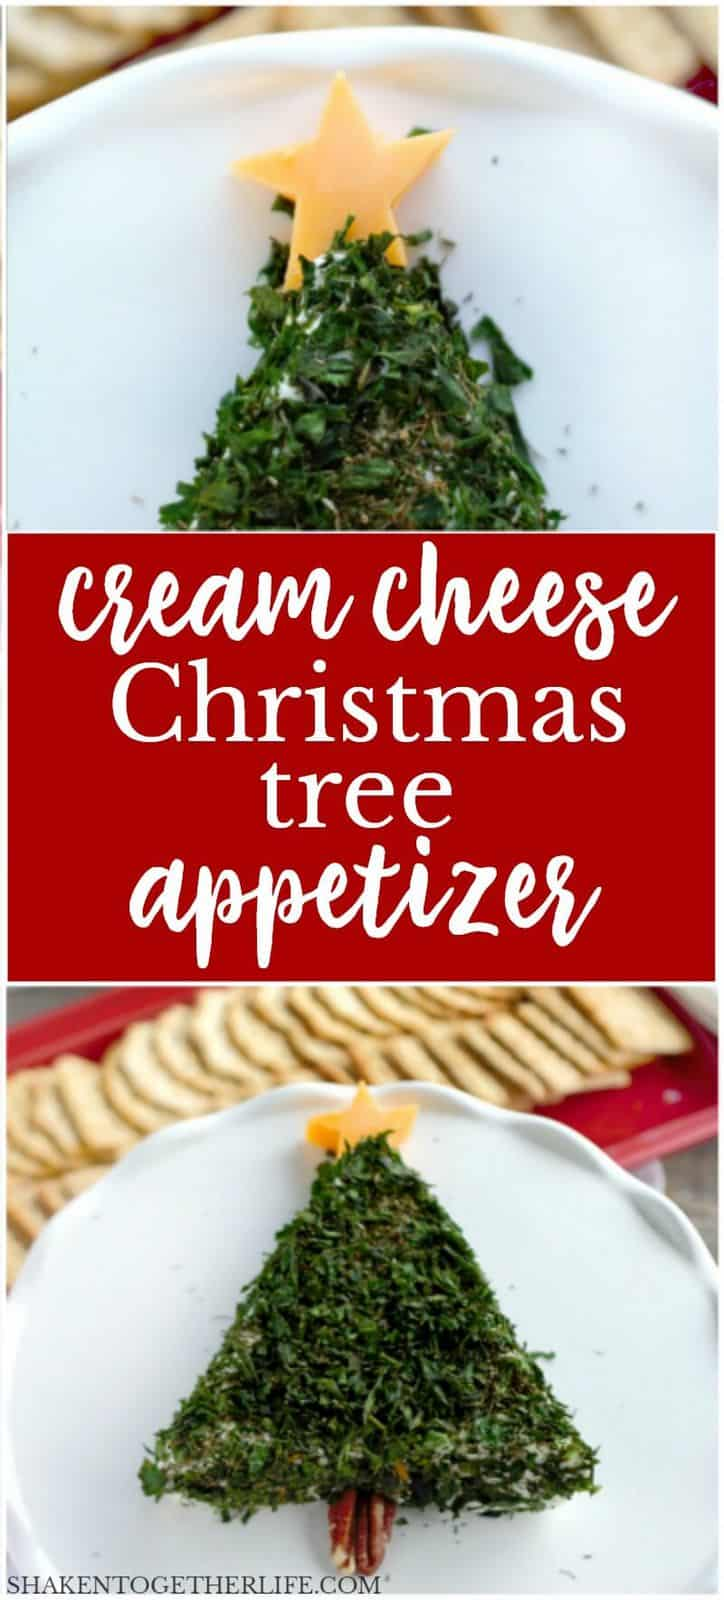 This Cream Cheese Christmas Tree Appetizer only has 2 ingredients and 2 simple garnishes - there isn't an easier holiday appetizer! We LOVE the combination of bright fresh herbs and tangy cream cheese!